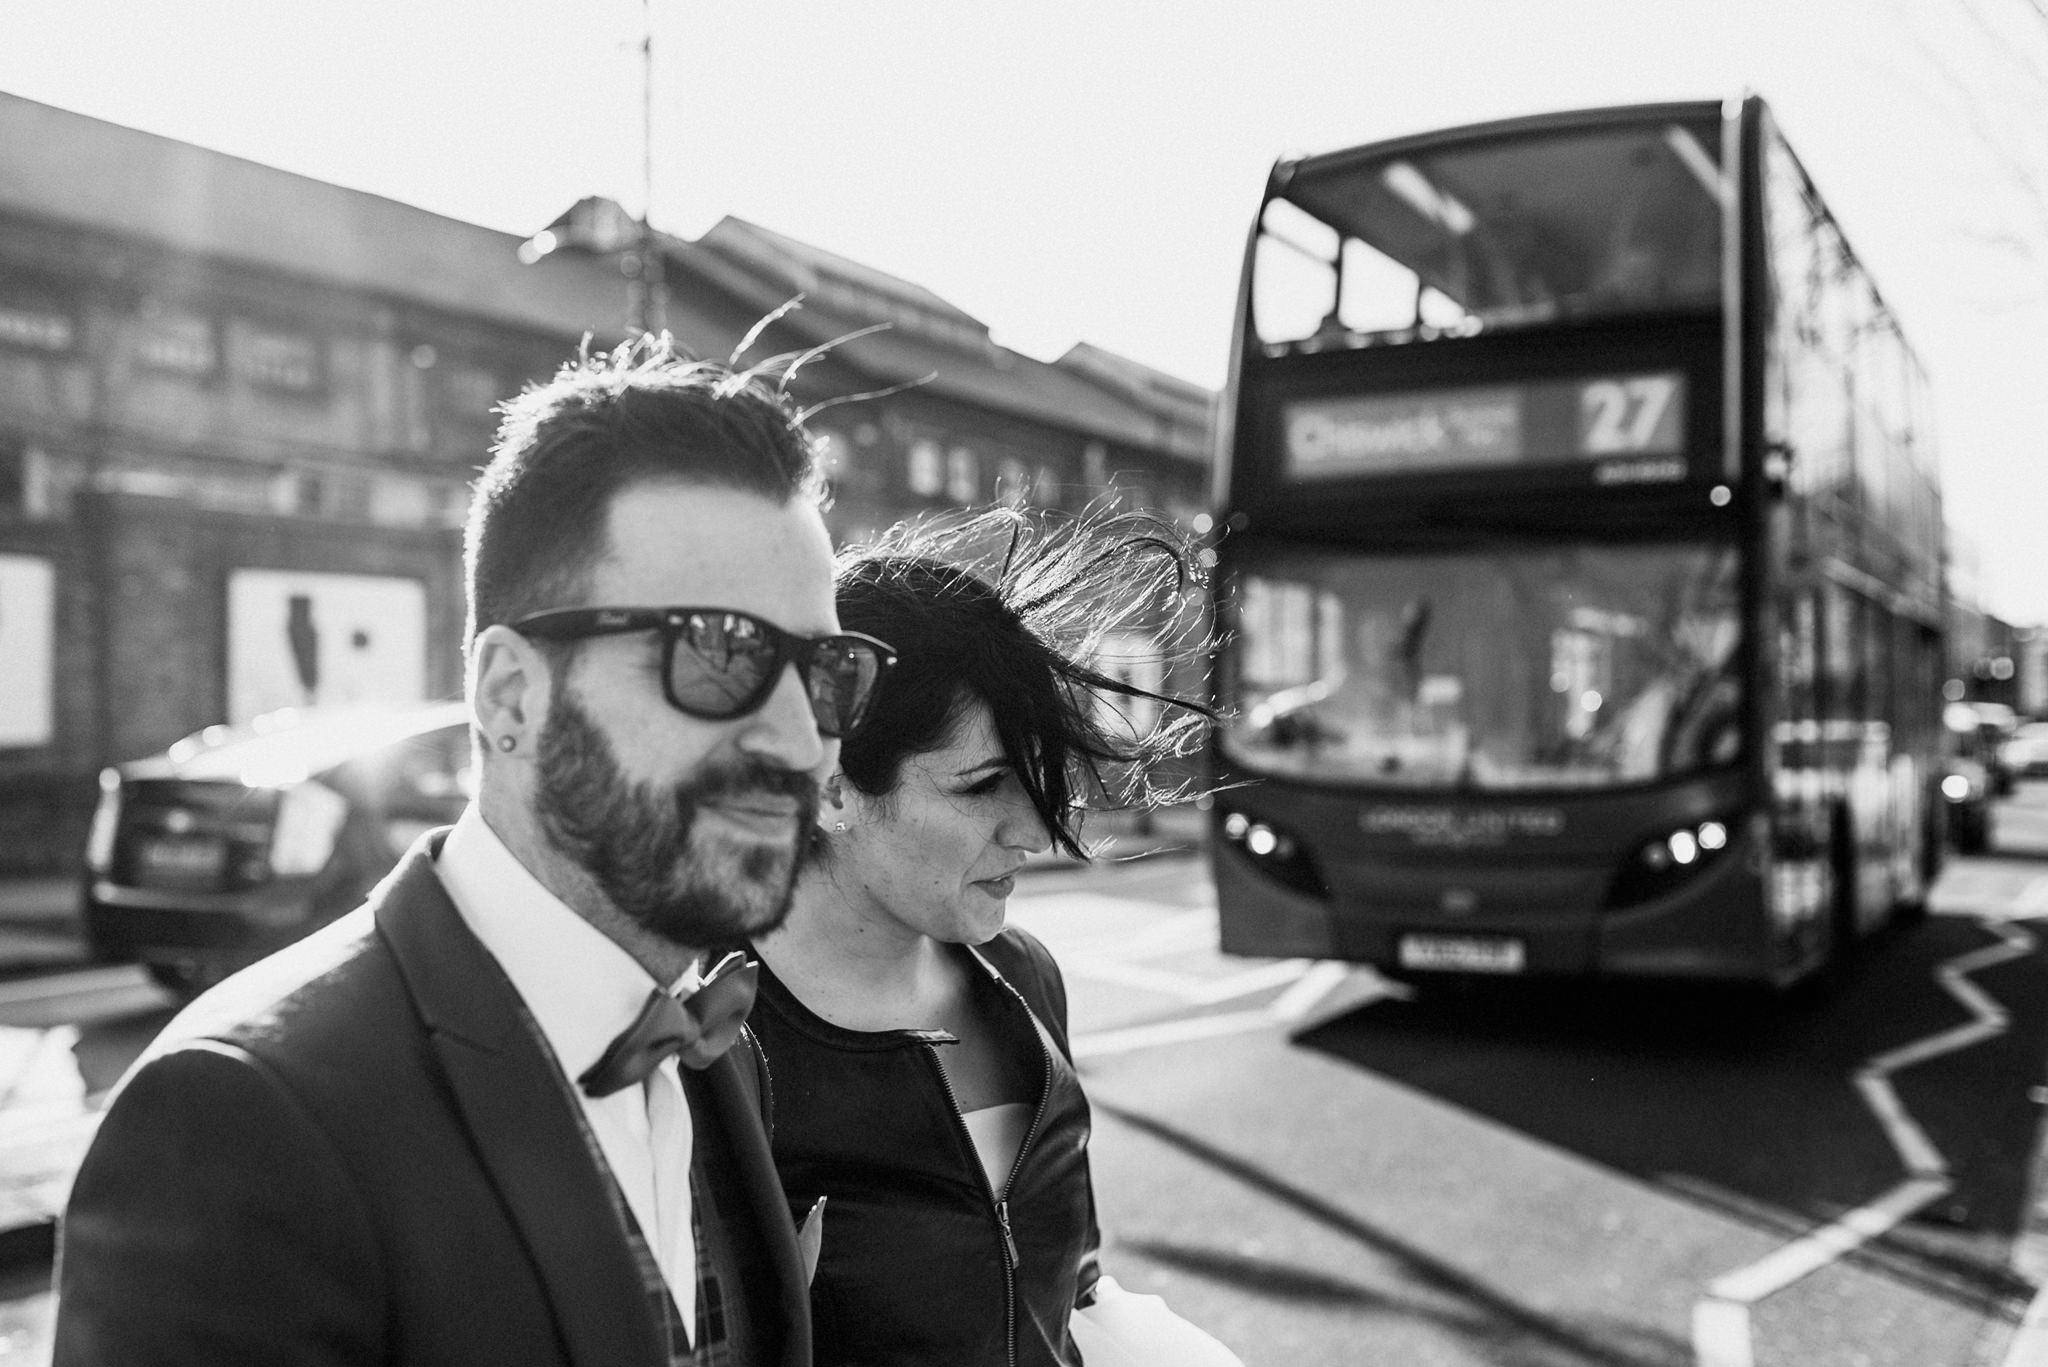 post-boda-londres-uk-london-wedding-igor-tamara